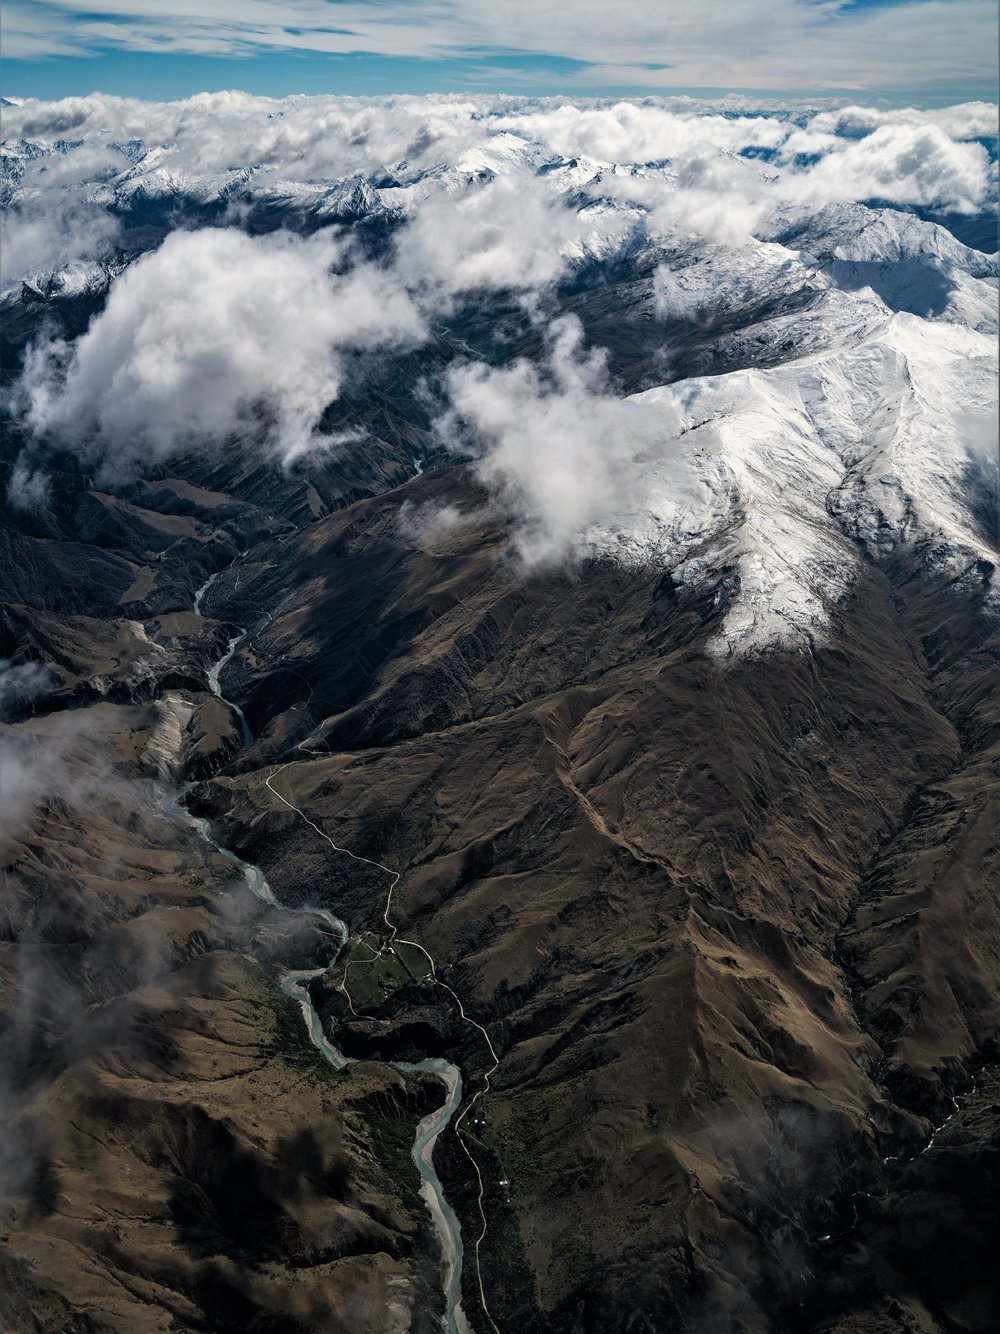 On approach to Queenstown, New Zealand